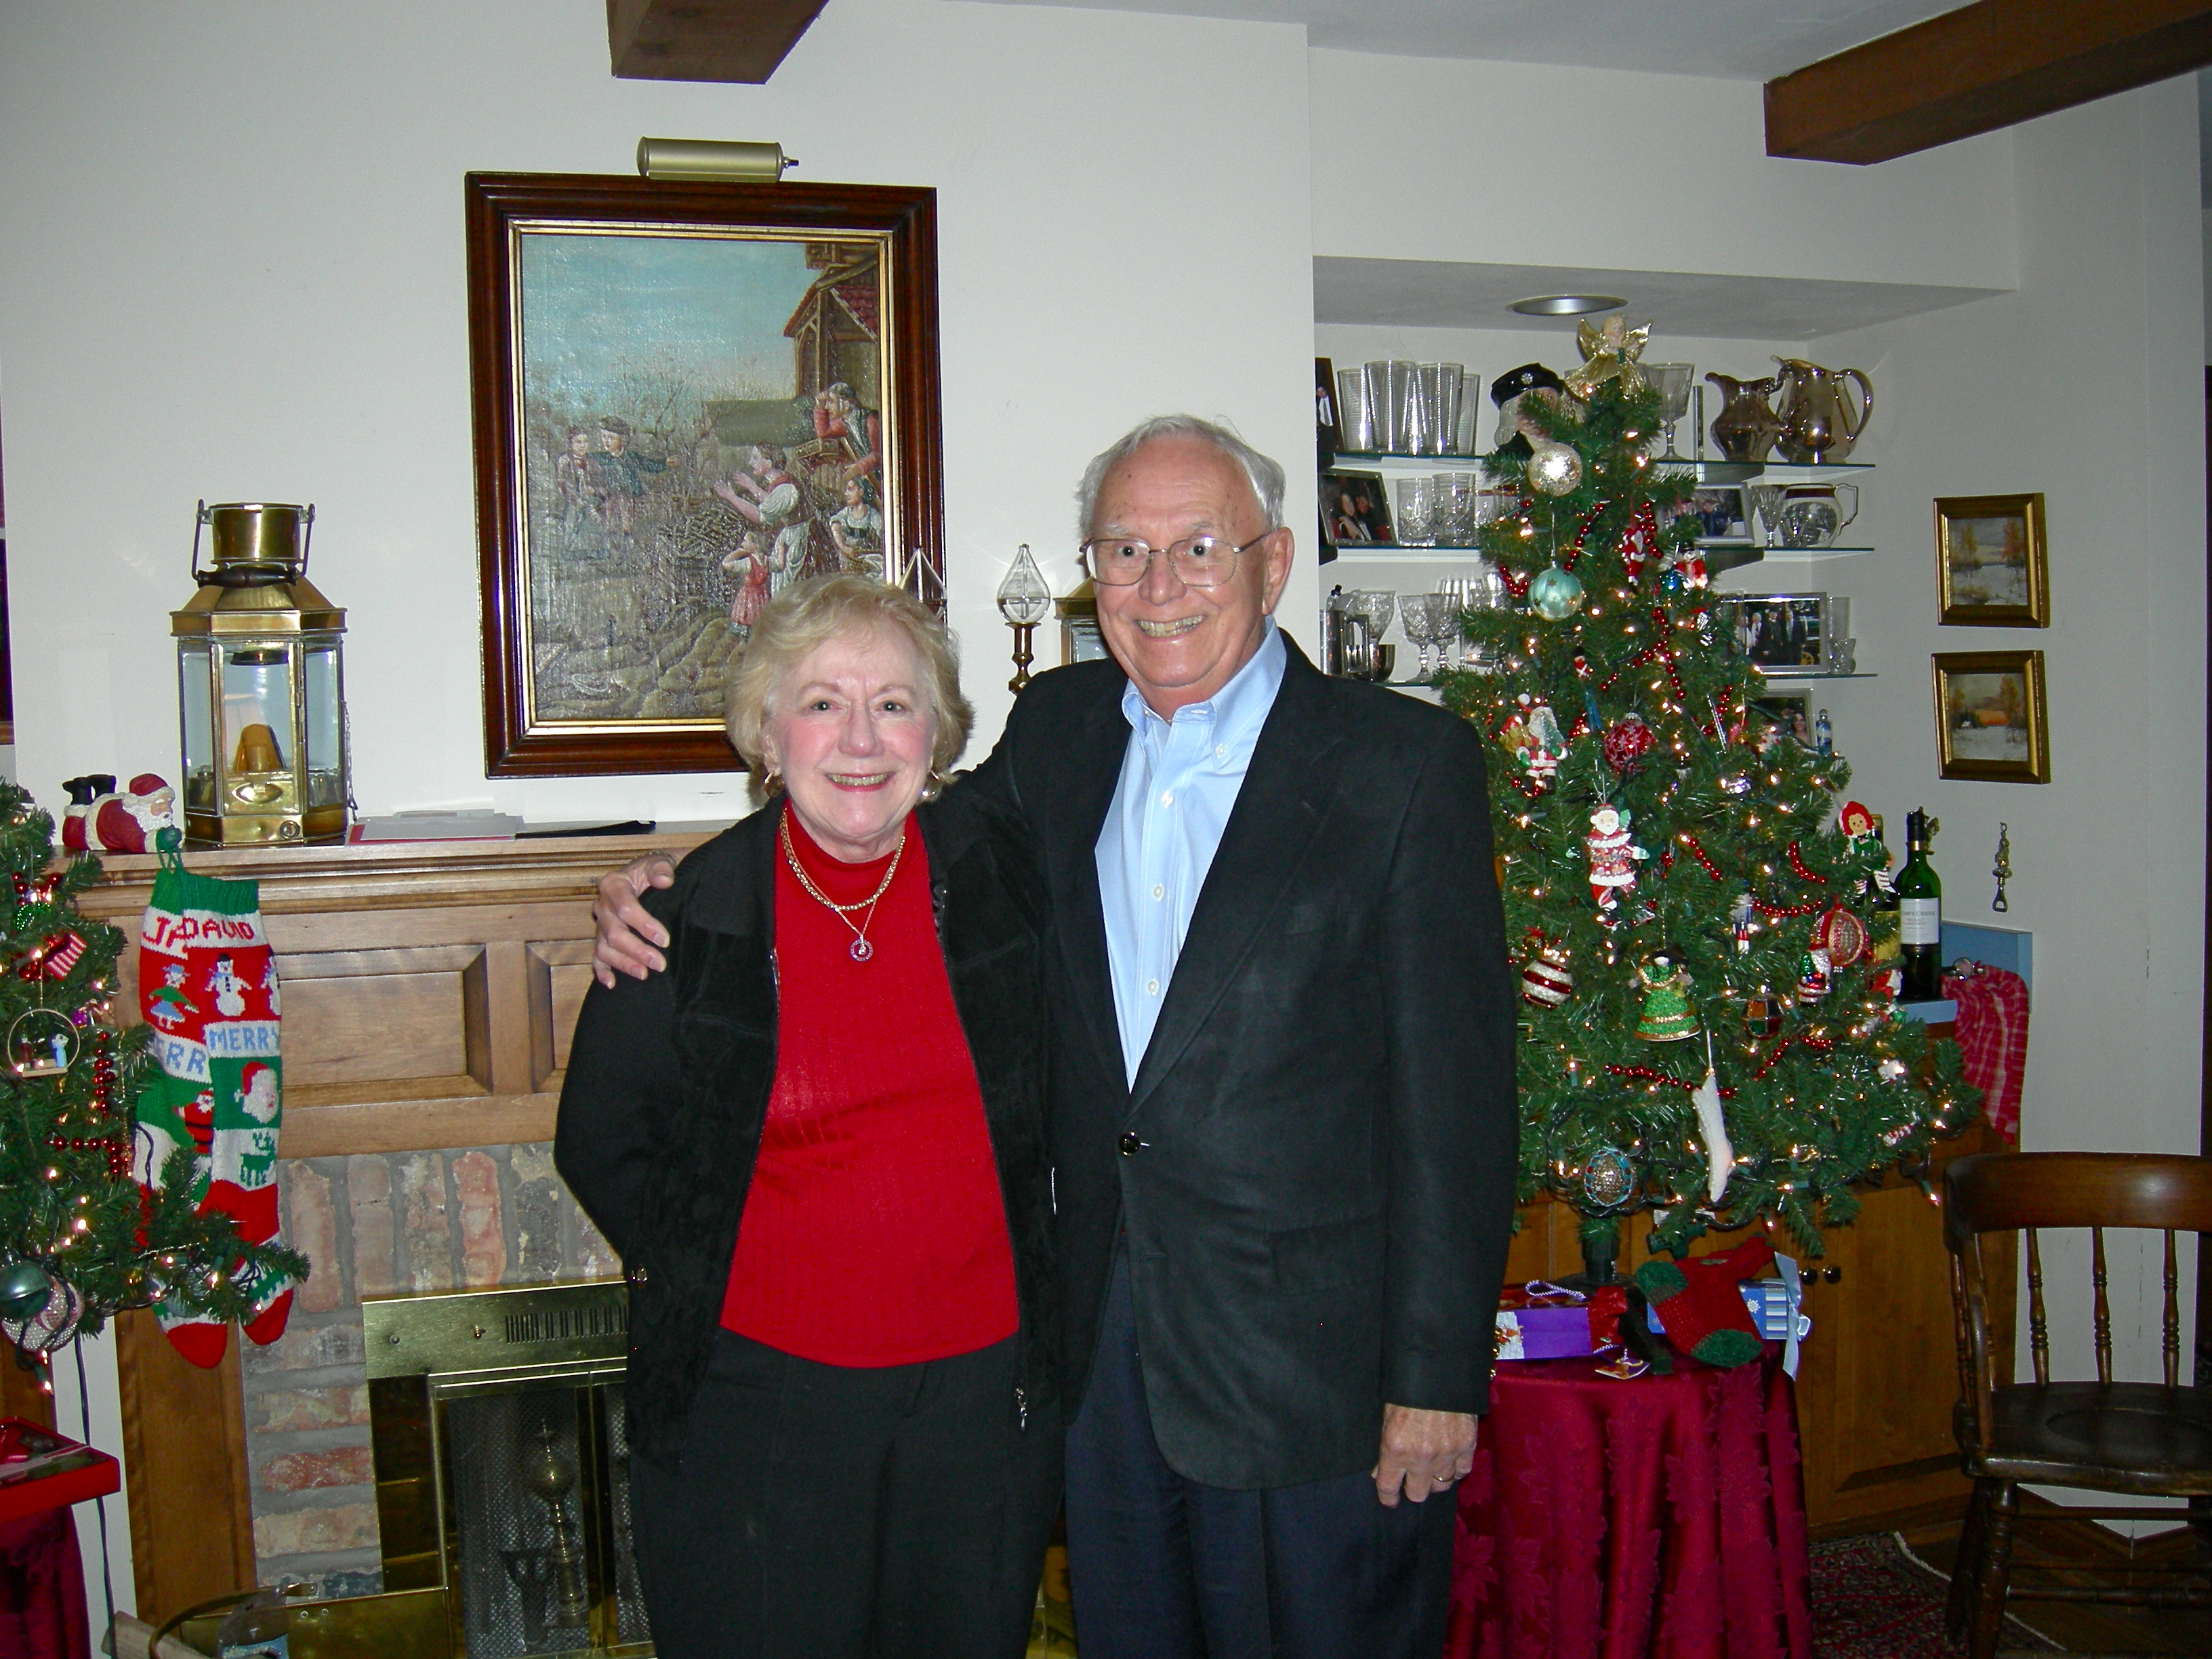 Grandma and Grandpa at Aunt Pam's